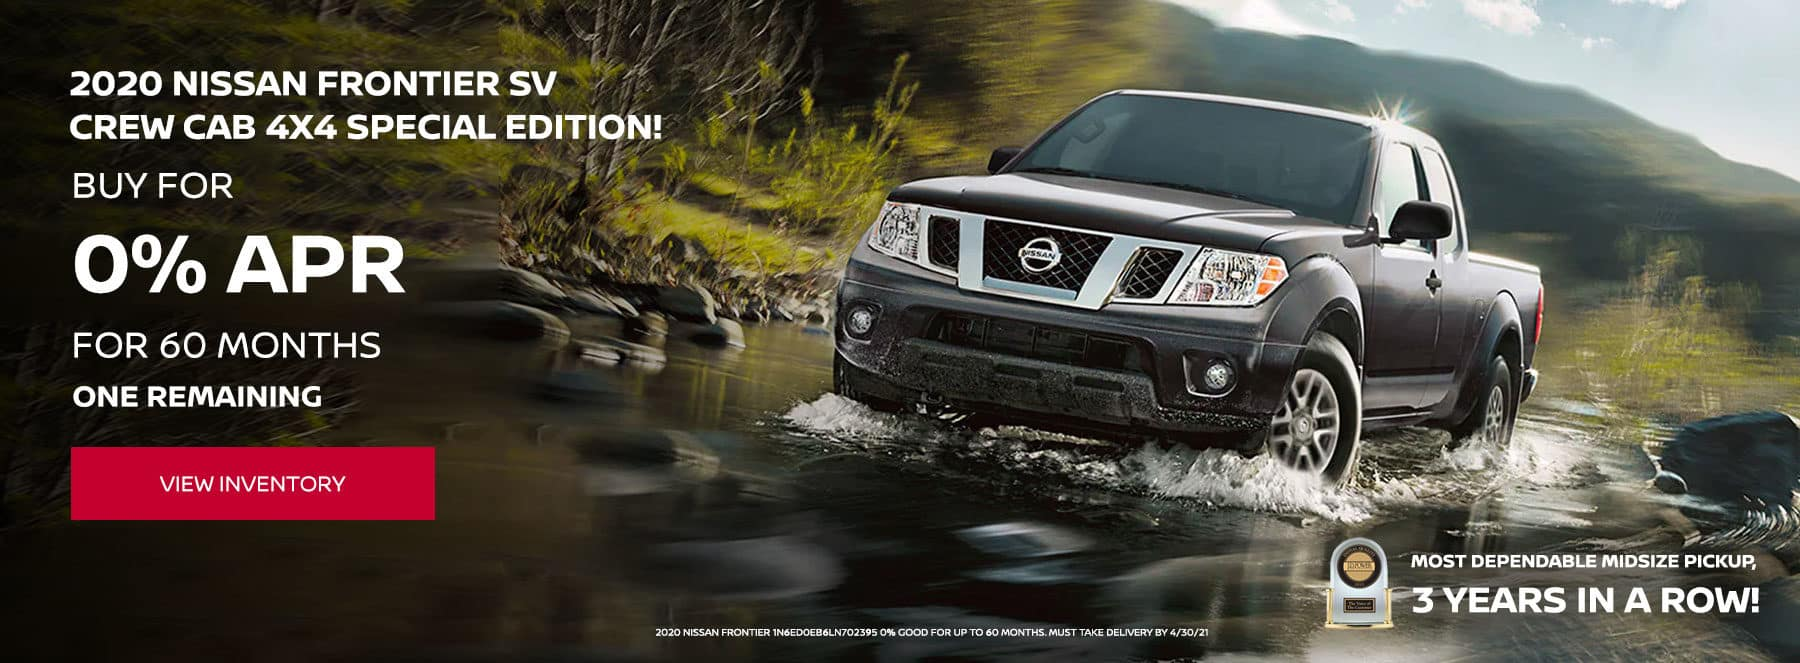 2020 Nissan Frontier SV Crew Cab 4X4 Special Edition!